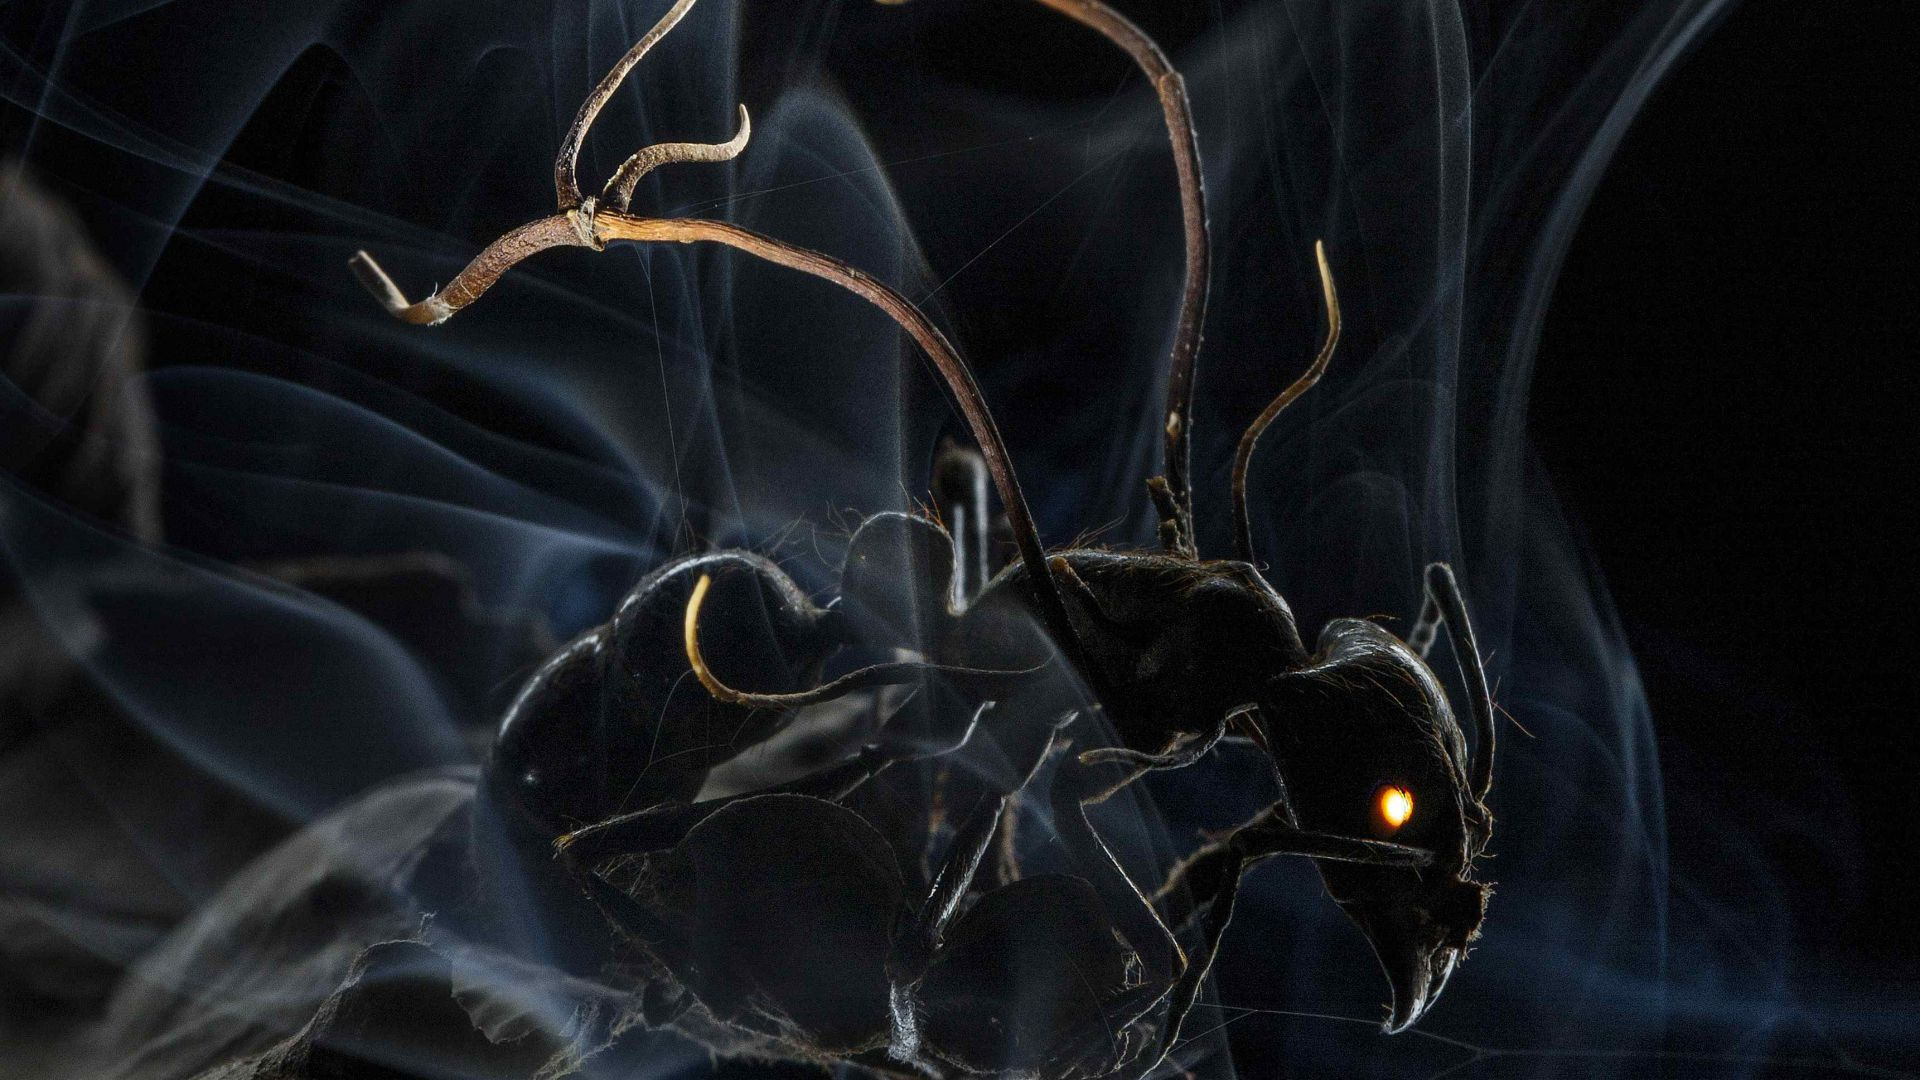 Ant, 4k, 5k wallpaper, HD, macro, smoke (horizontal)